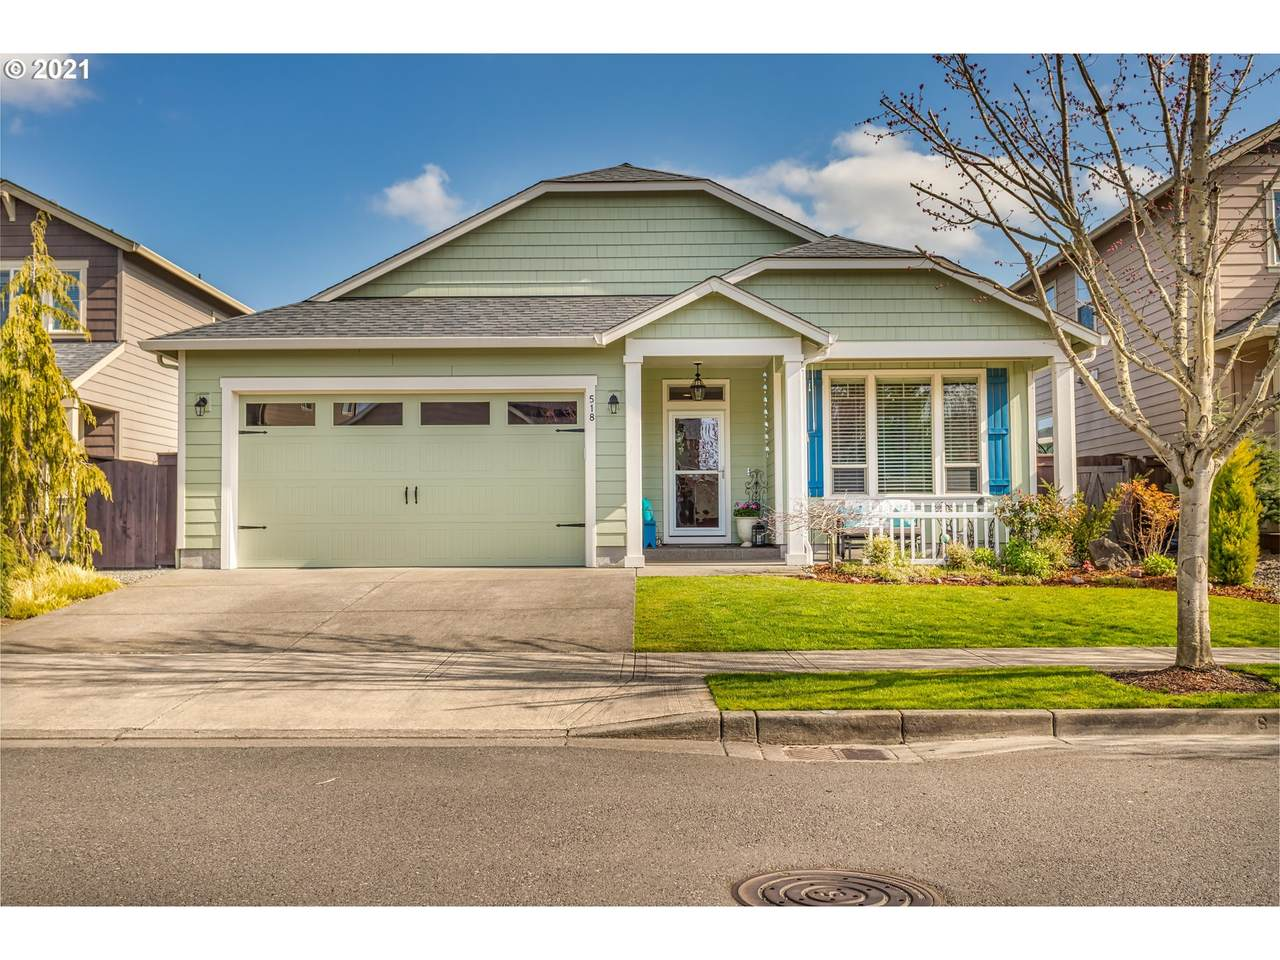 518 Helens View Dr - Photo 1